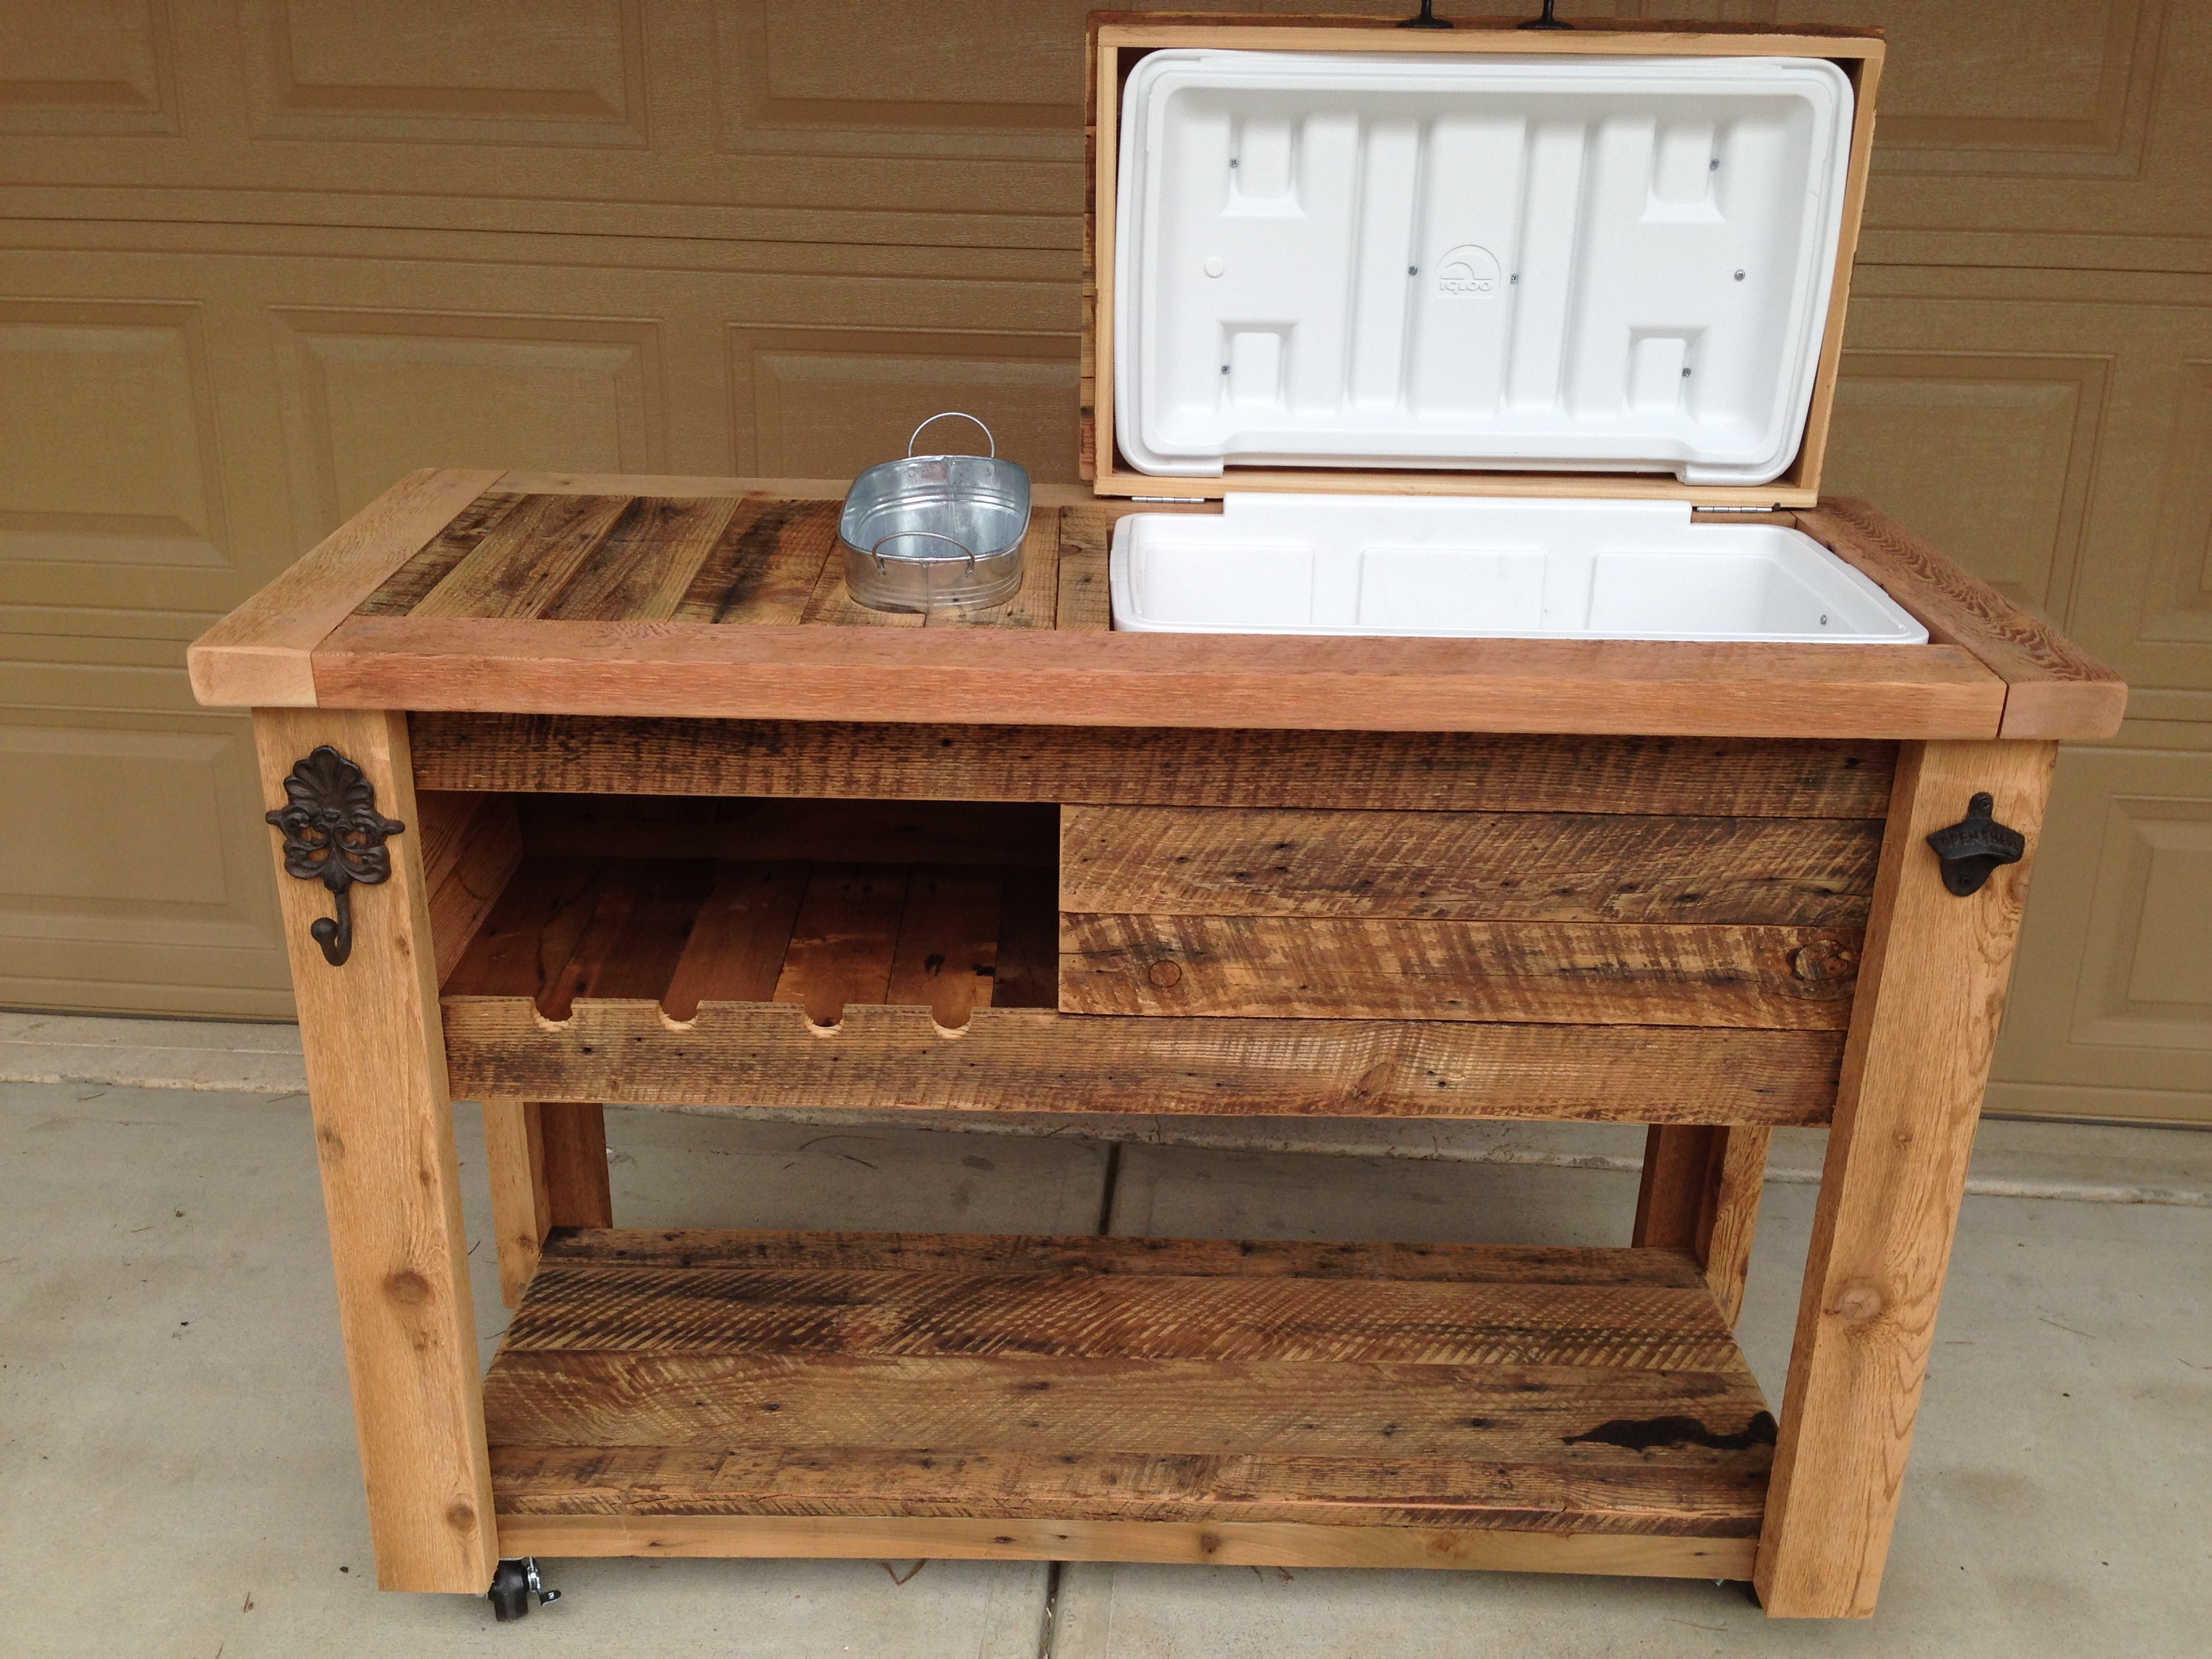 Rustic Cooler Table With Wine Rack Rustic Woodworx: picnic table with cooler plans